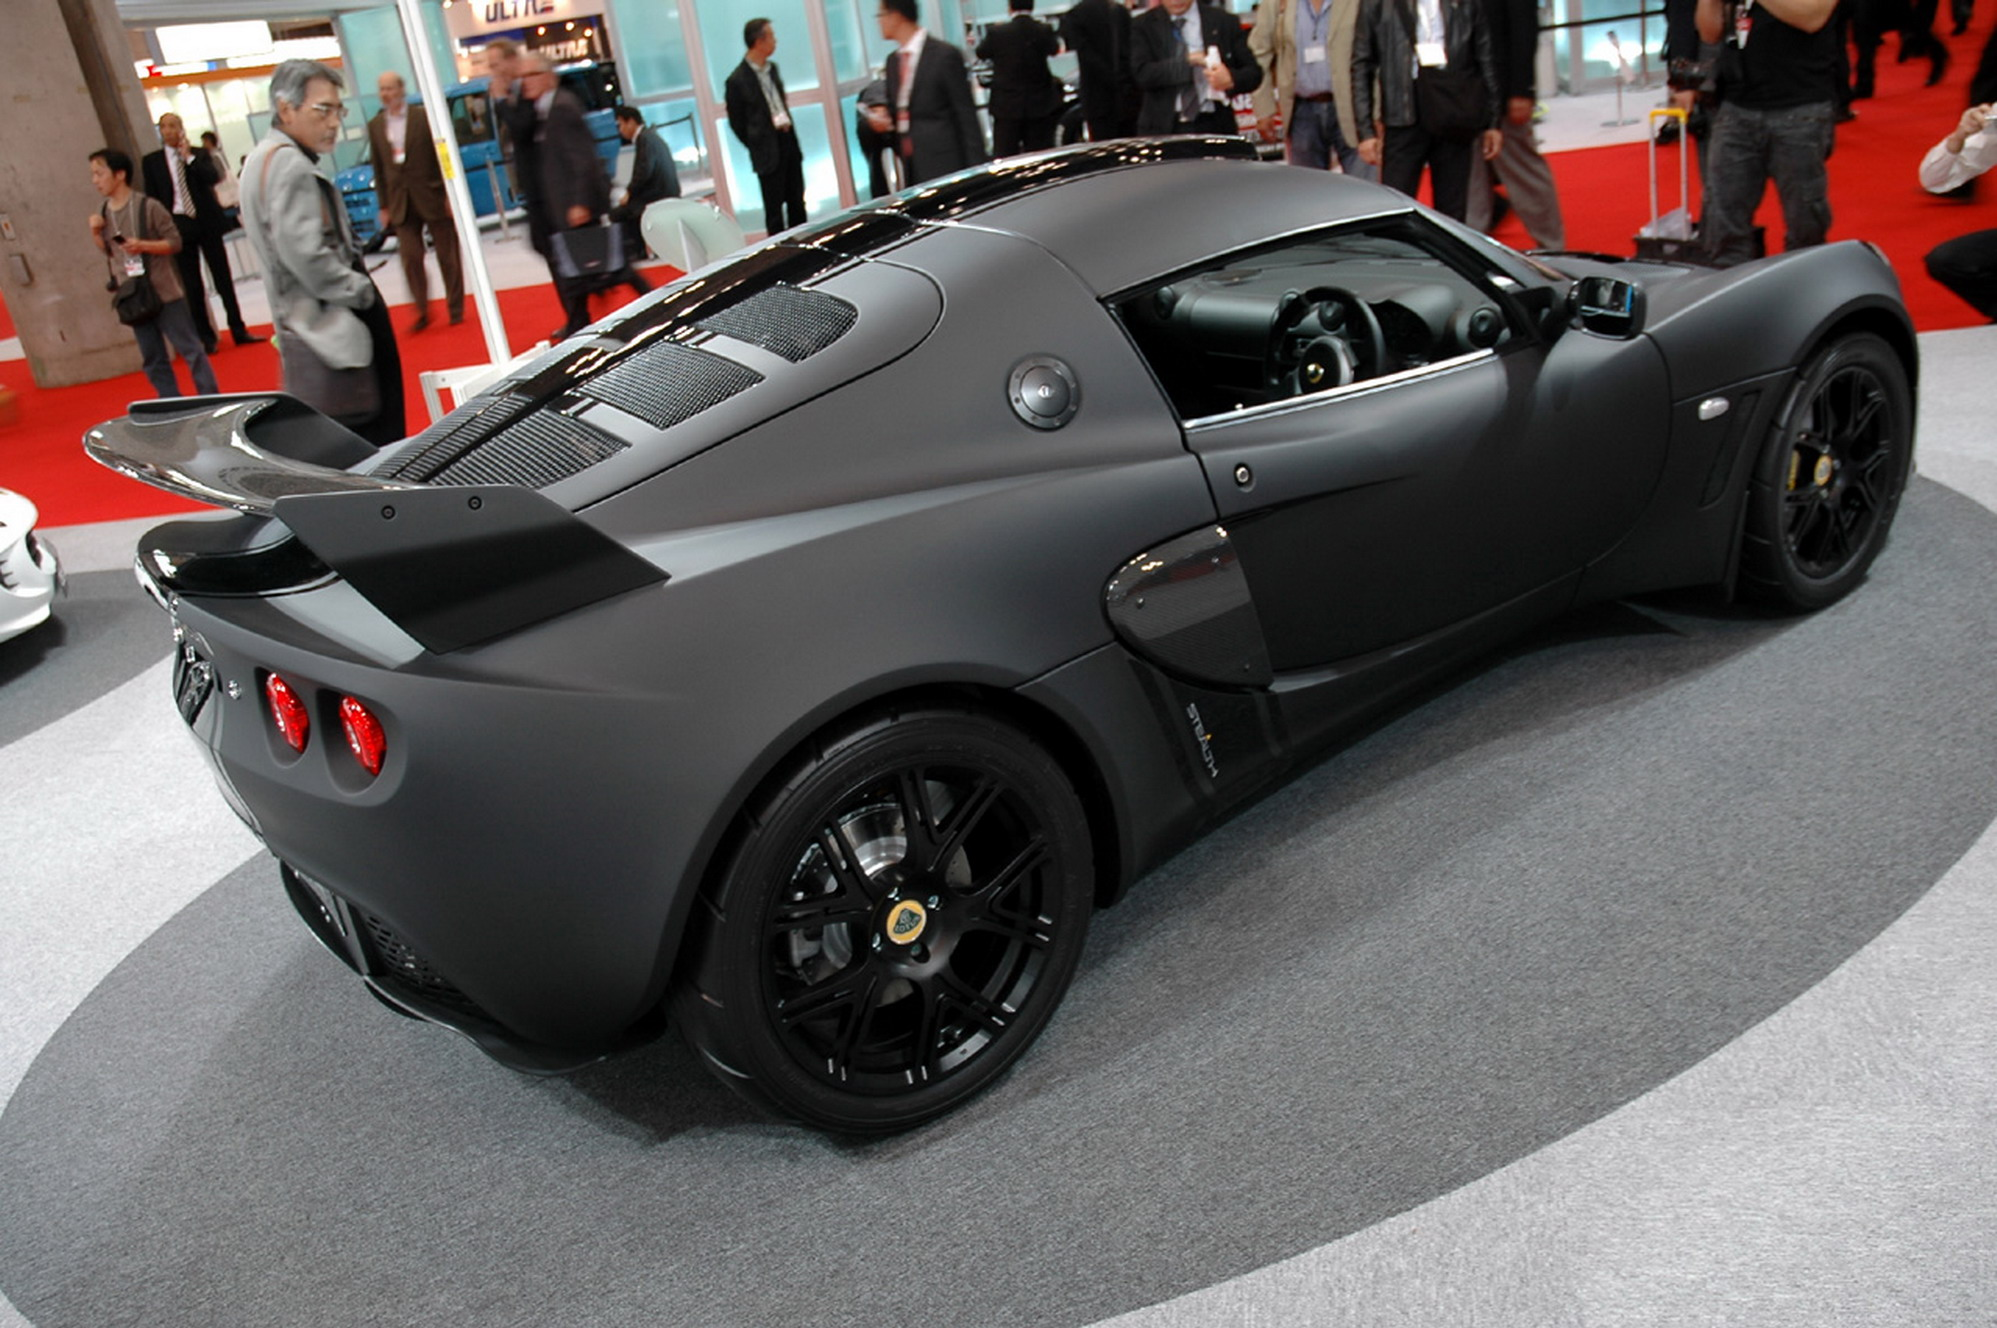 Matte Black Car Paint.Matte Black Car Paint Best Upcoming Car Release 2020